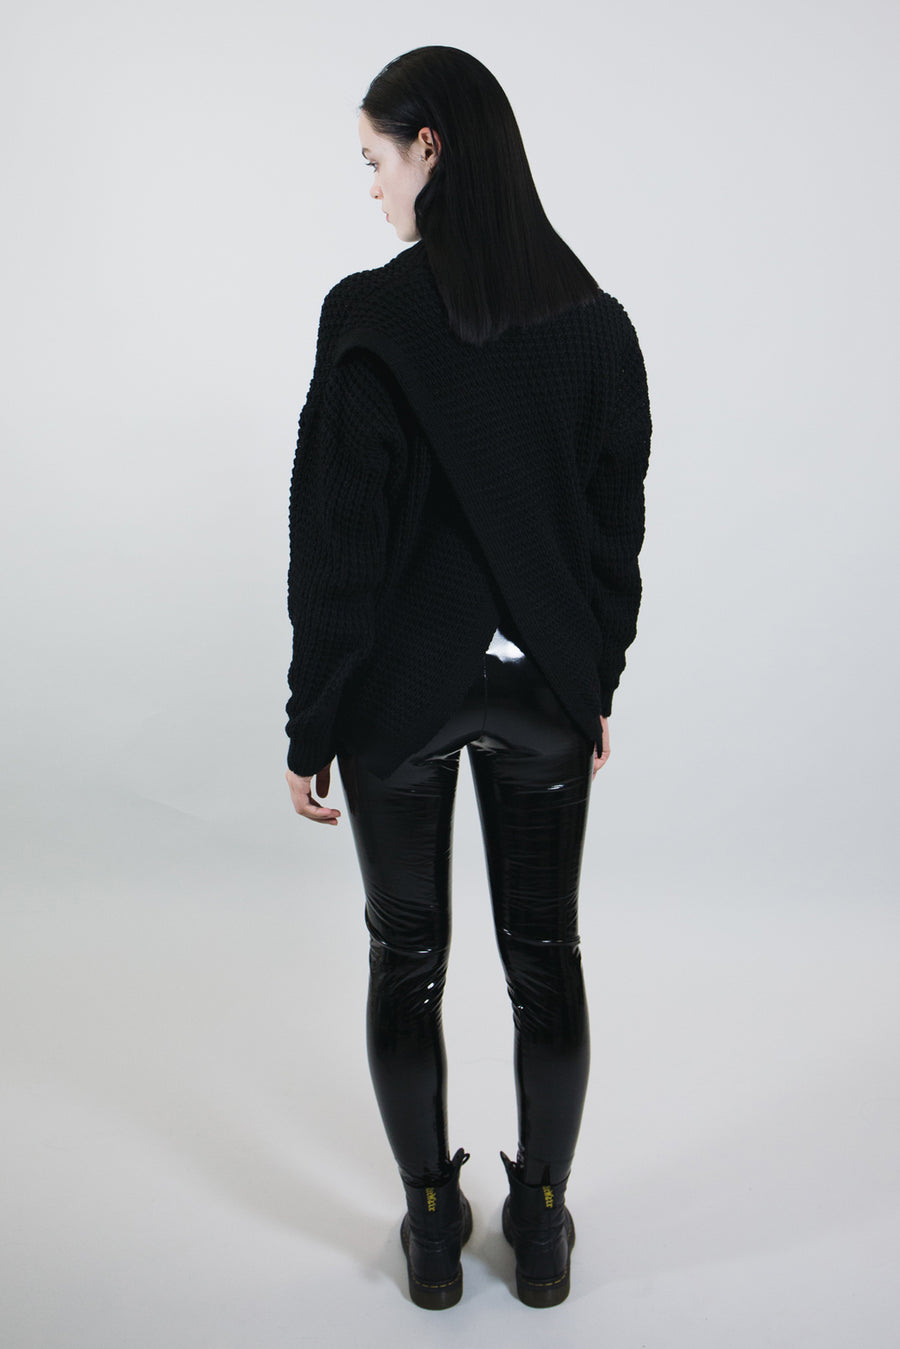 mary wyatt london black knit jumper with cross over back and high neck